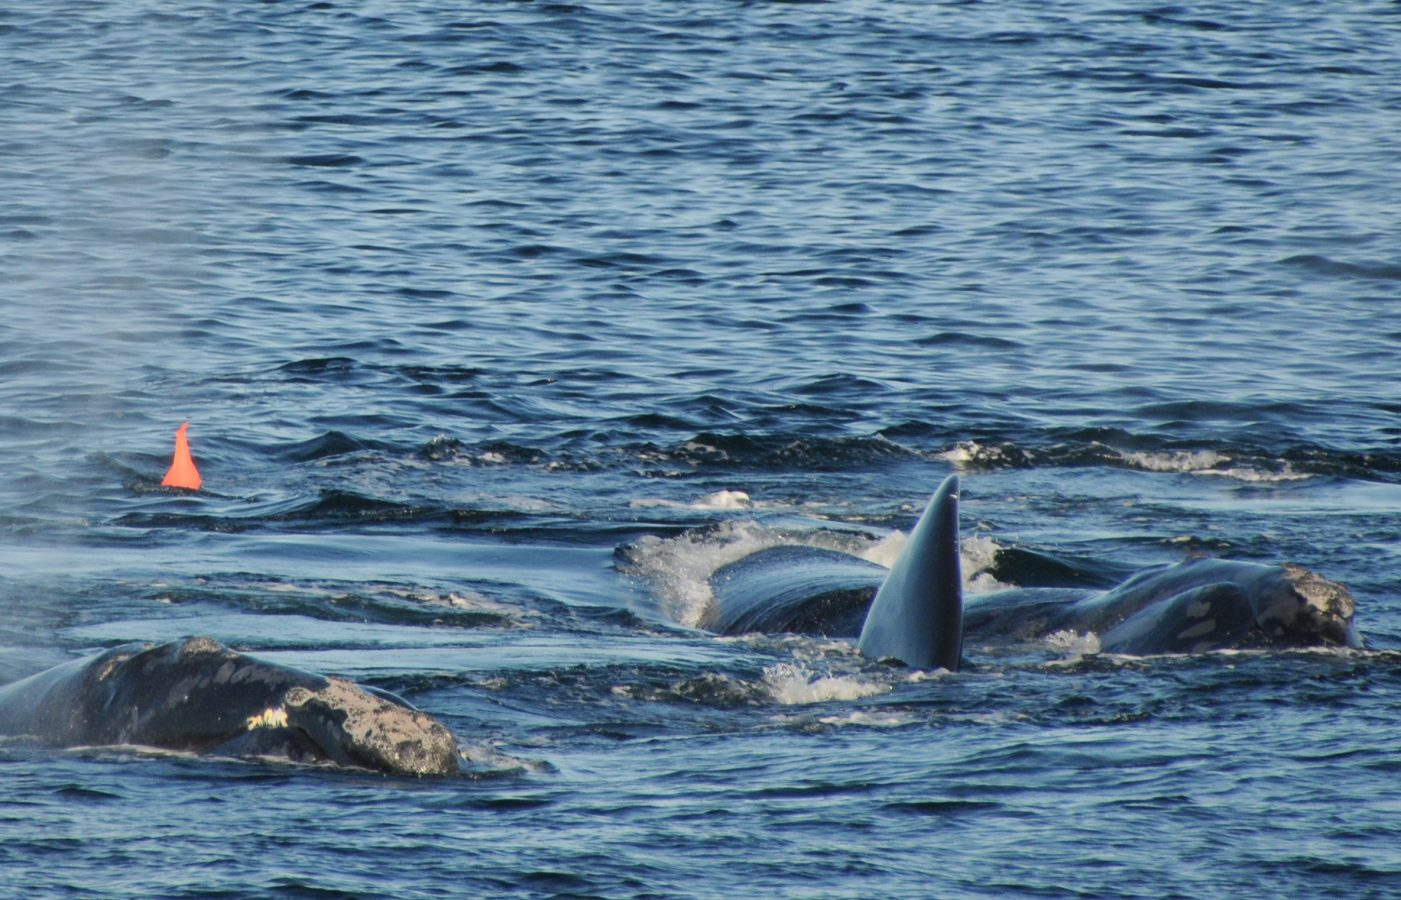 A group of whales near the sonobuoy